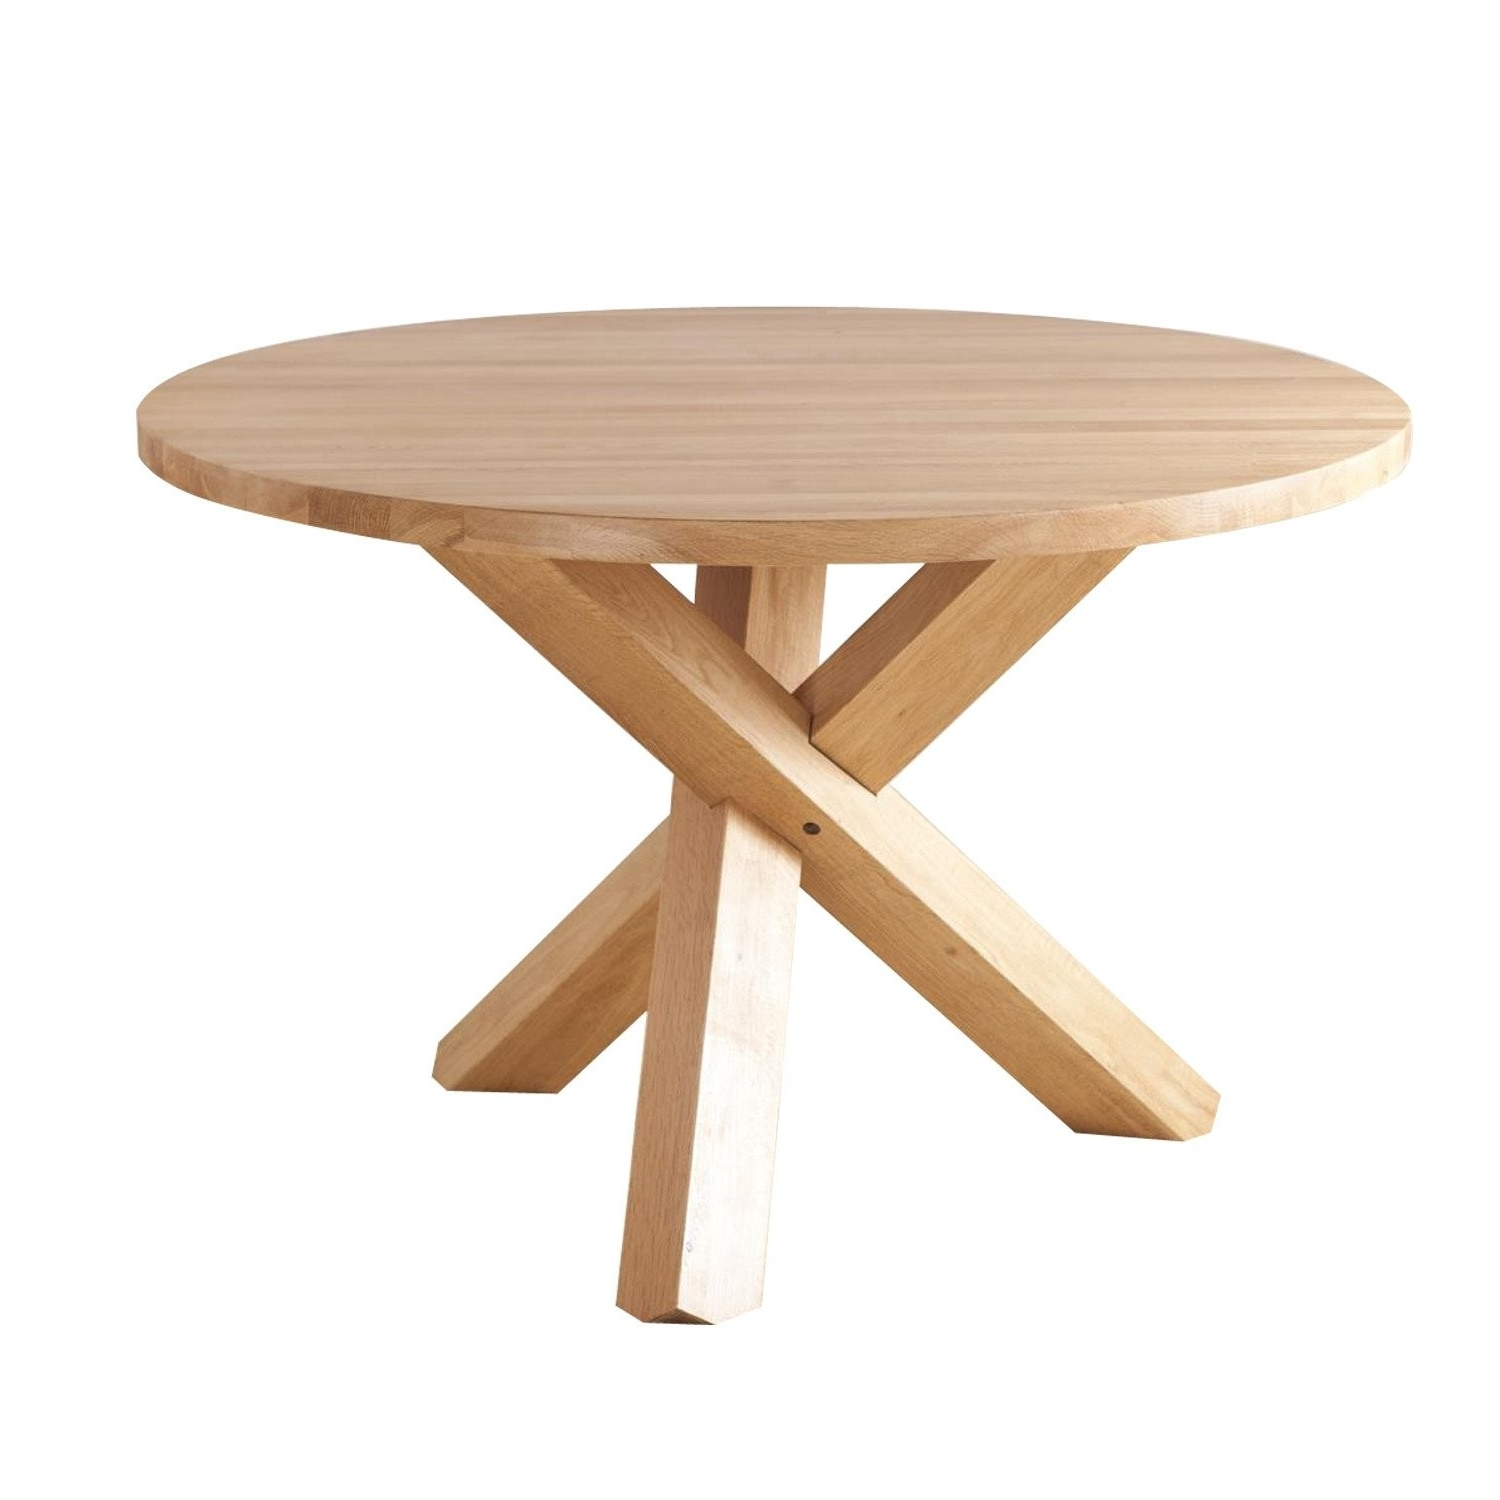 Best And Newest Round Oak Dining Tables – Soulpower Regarding Circular Oak Dining Tables (View 8 of 25)